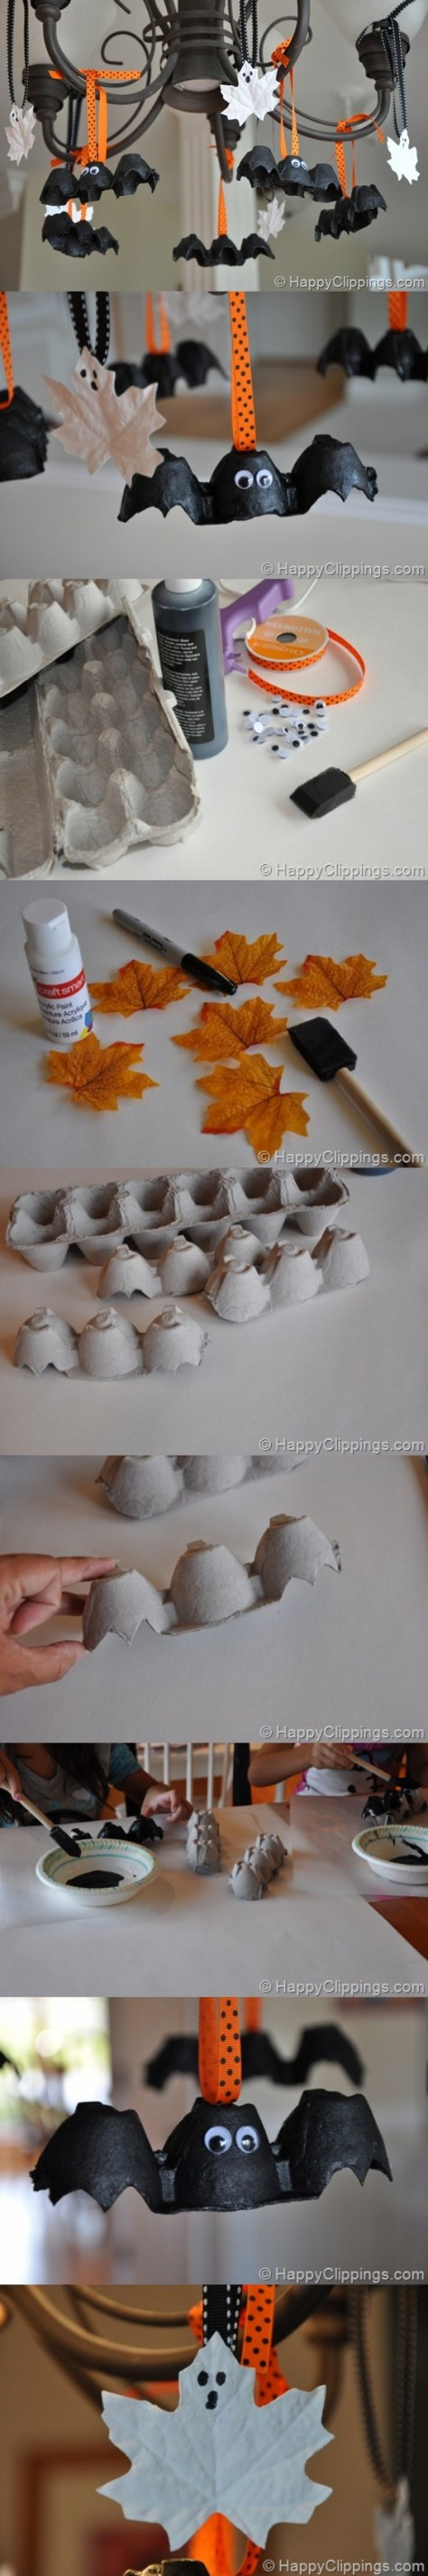 8. Halloween Egg Carton Bats and Leaf Ghosts